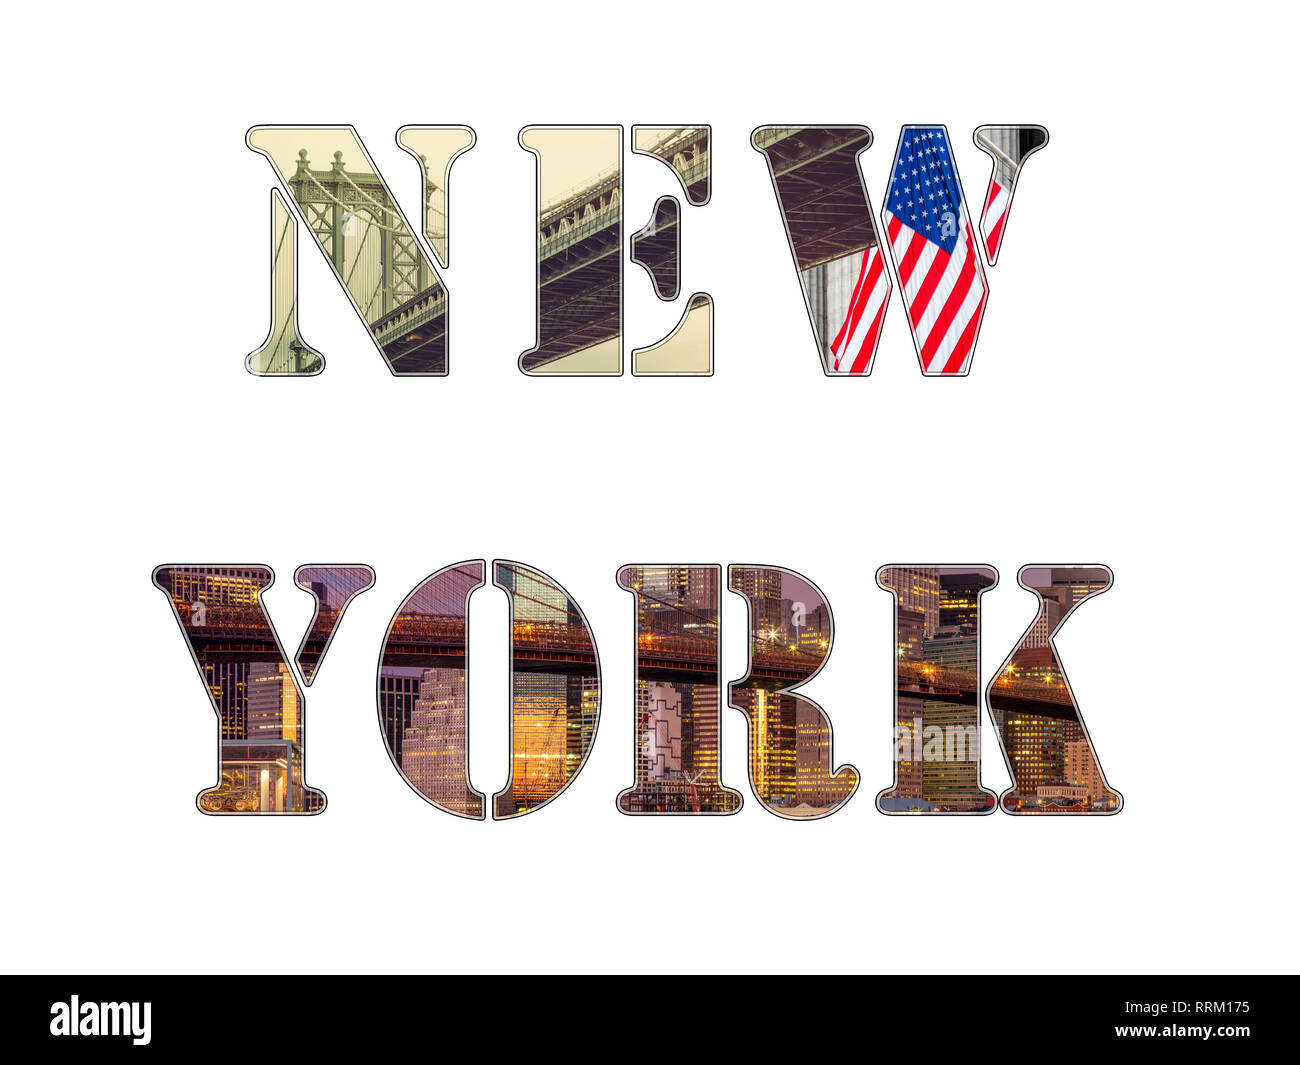 New York City letters -  photo collage of different famous locations, landmarks and areas of New York, isolated on white - Stock Image